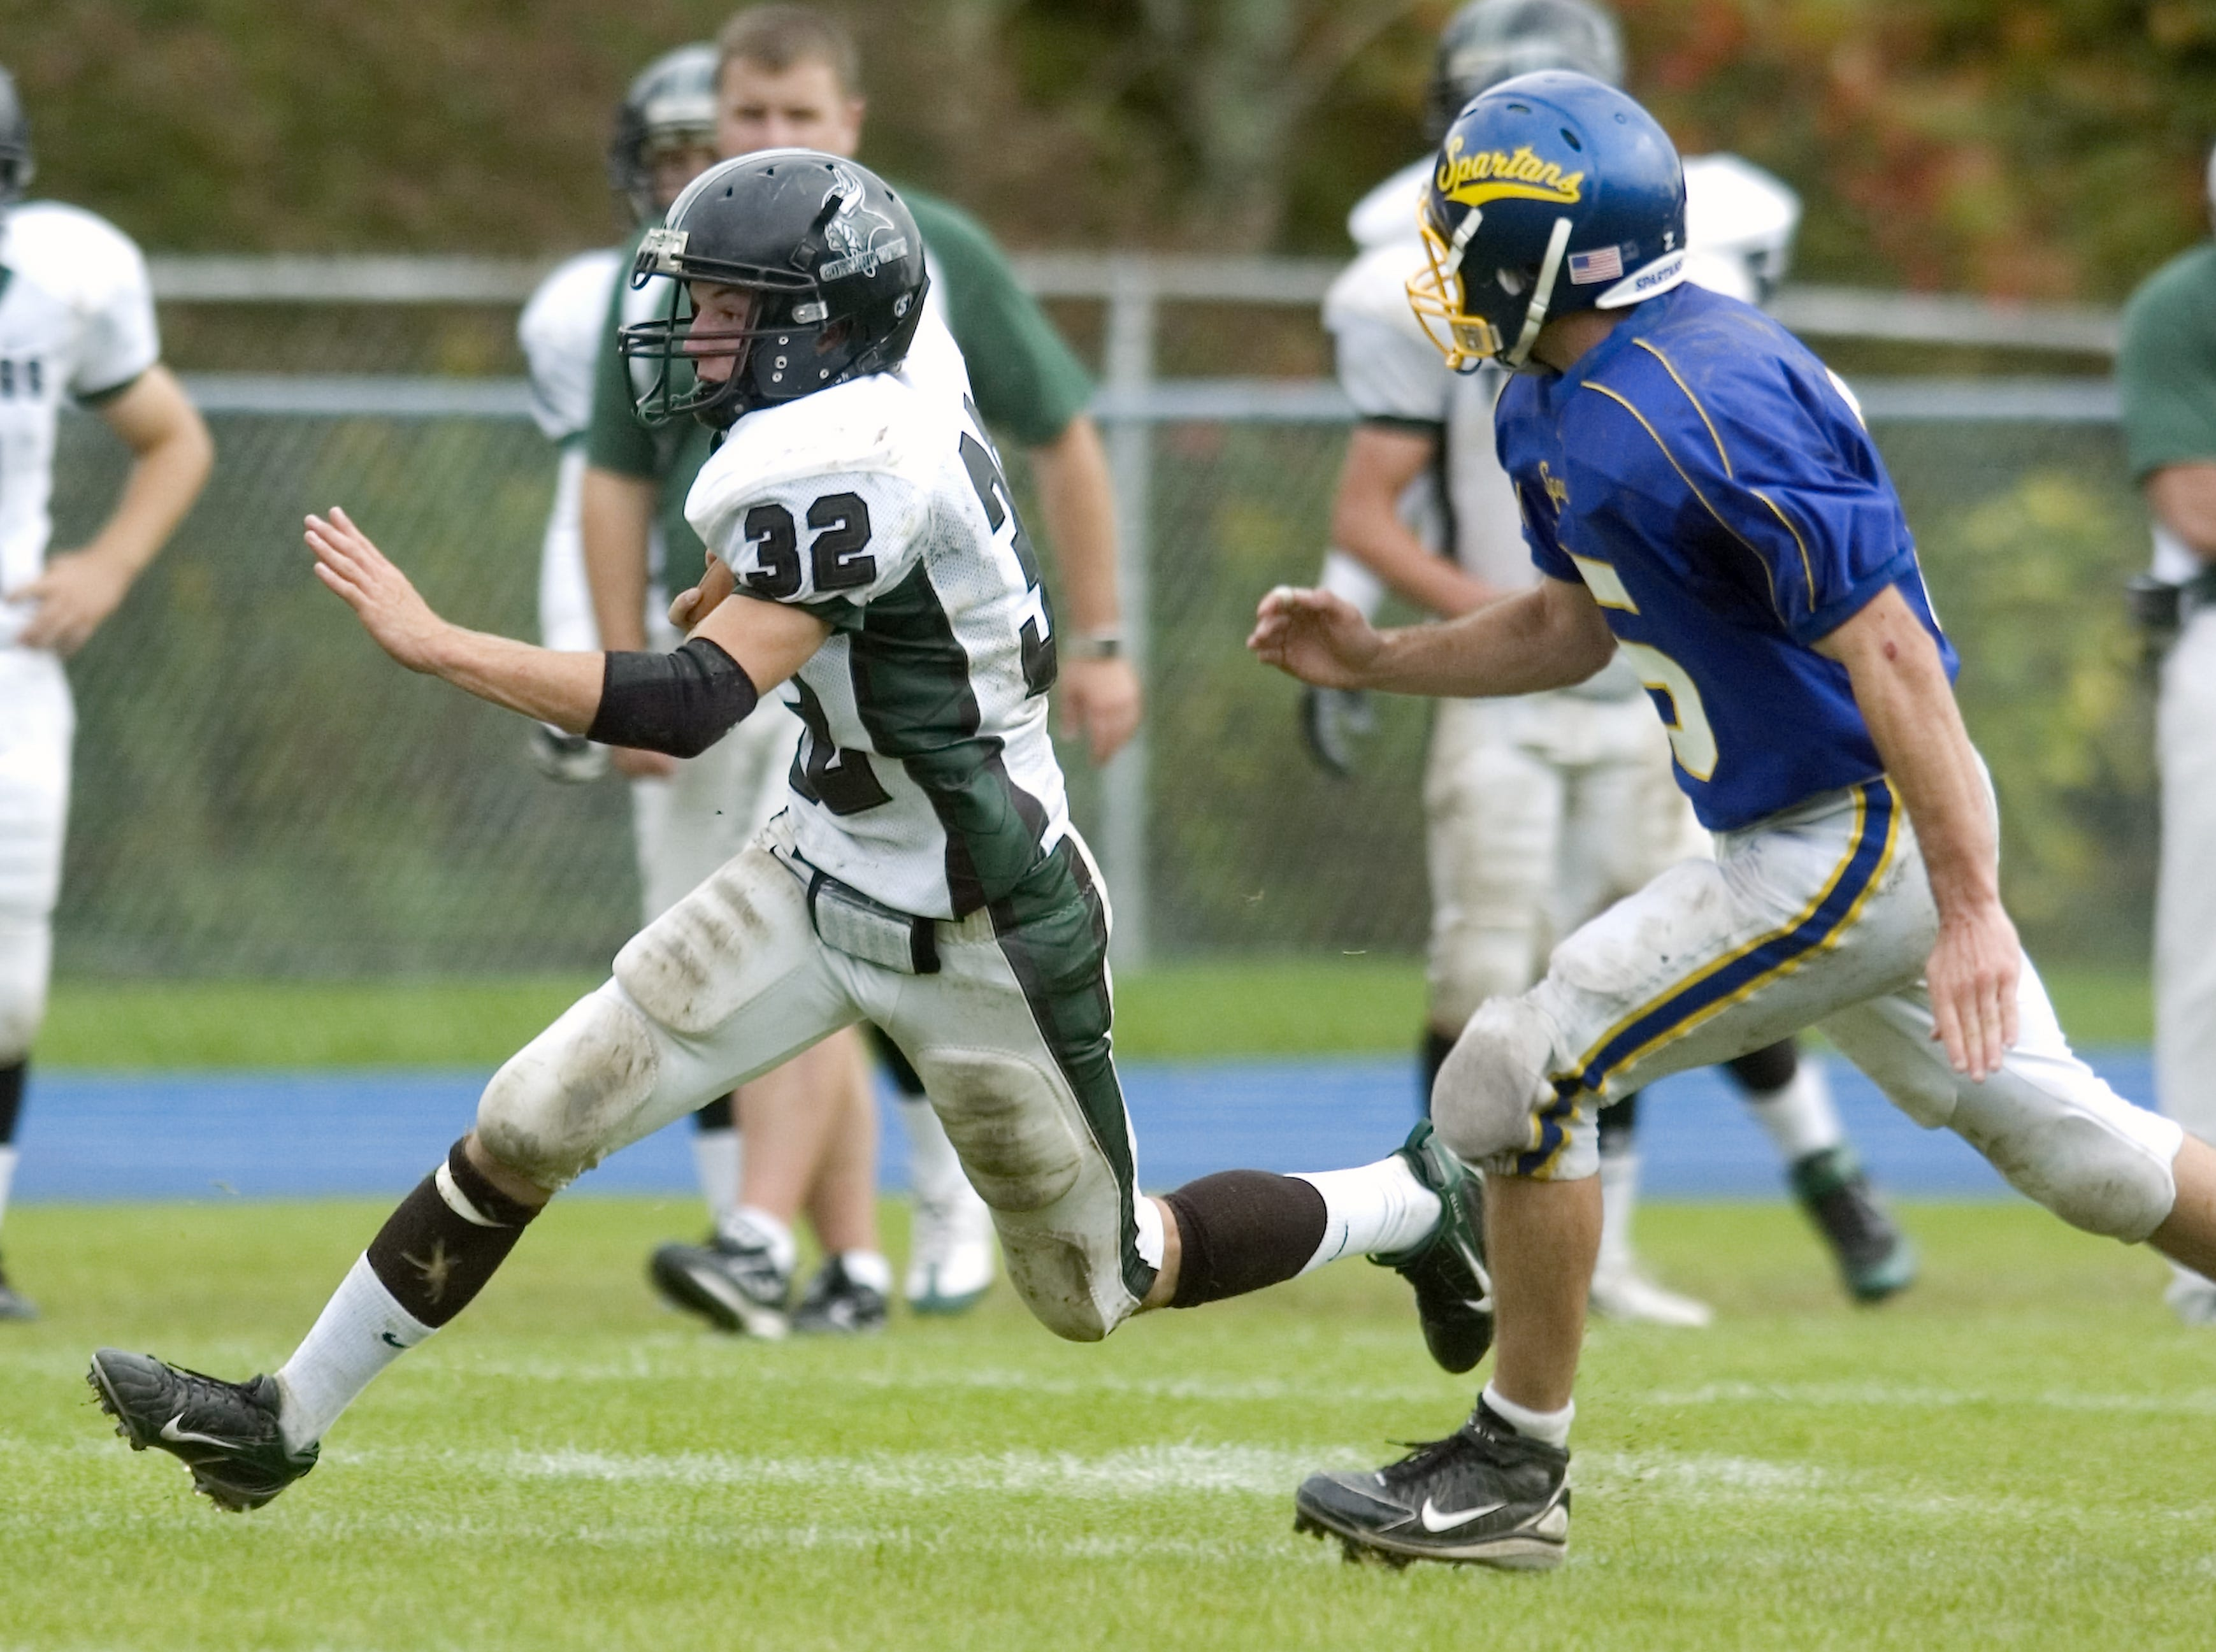 Corning West's Gregory Riff, left, takes the ball past Maine-Endwell's Joey Powell in the third quarter of a 2008 game at M-E.